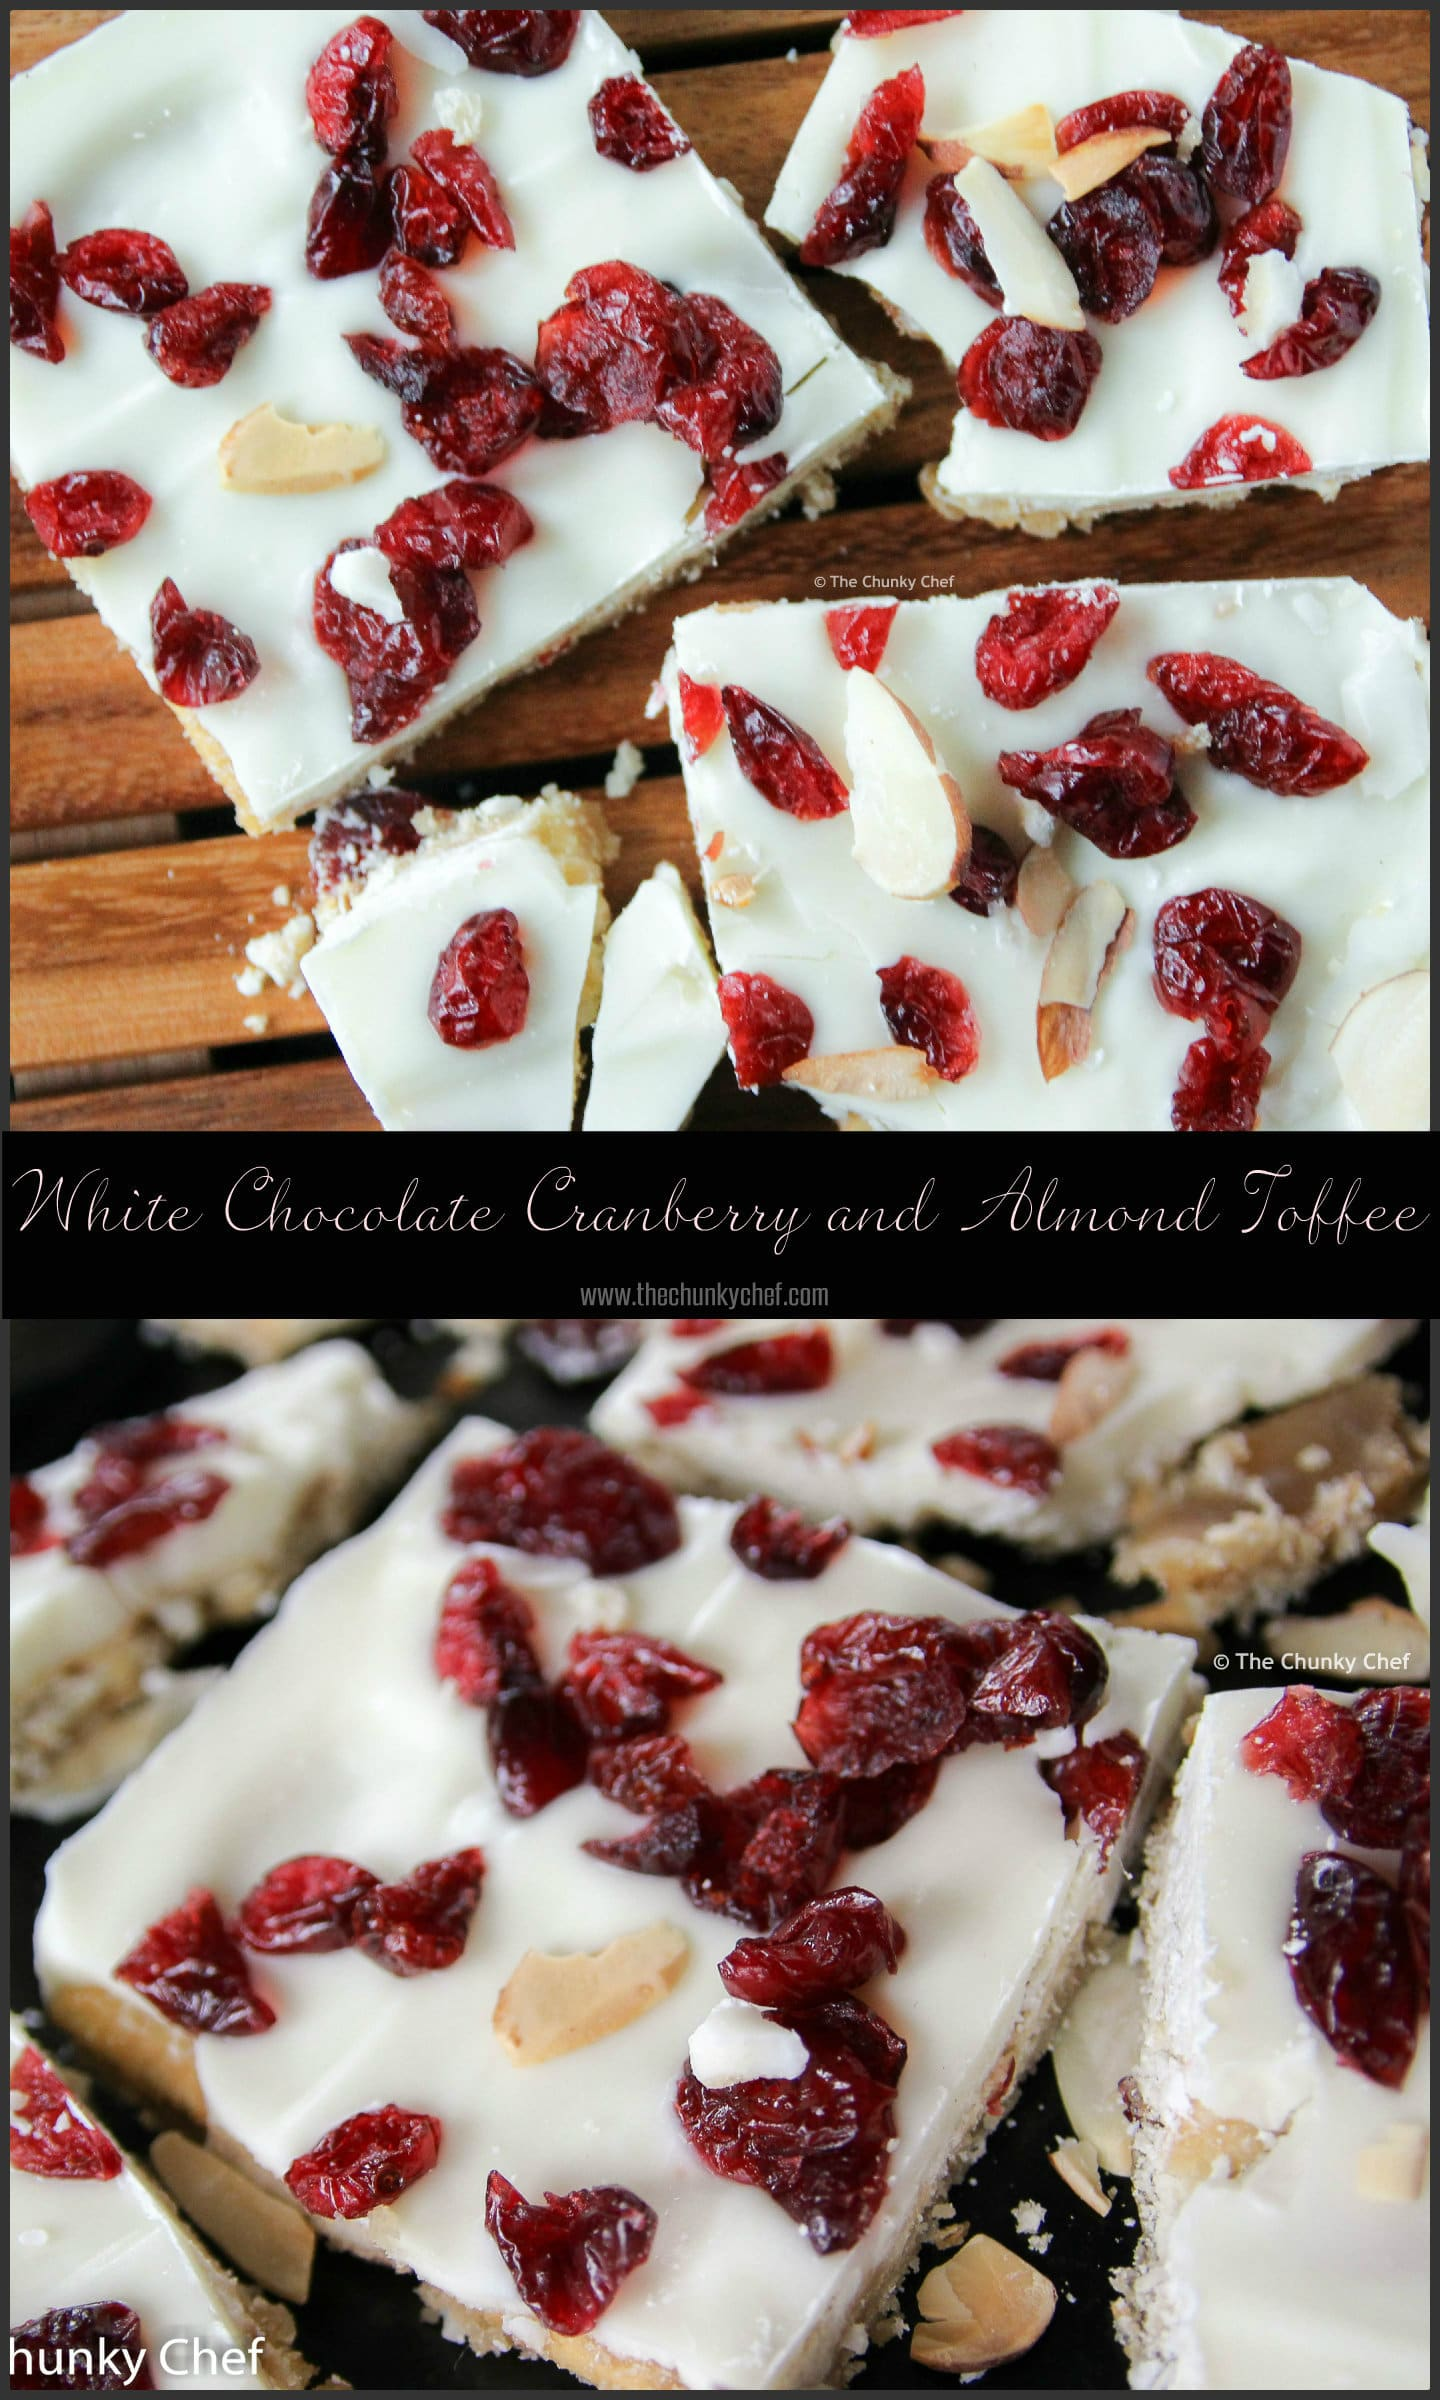 Saltine crackers are transformed into decadent white chocolate covered toffee studded with sweet cranberries and crunchy toasted almonds